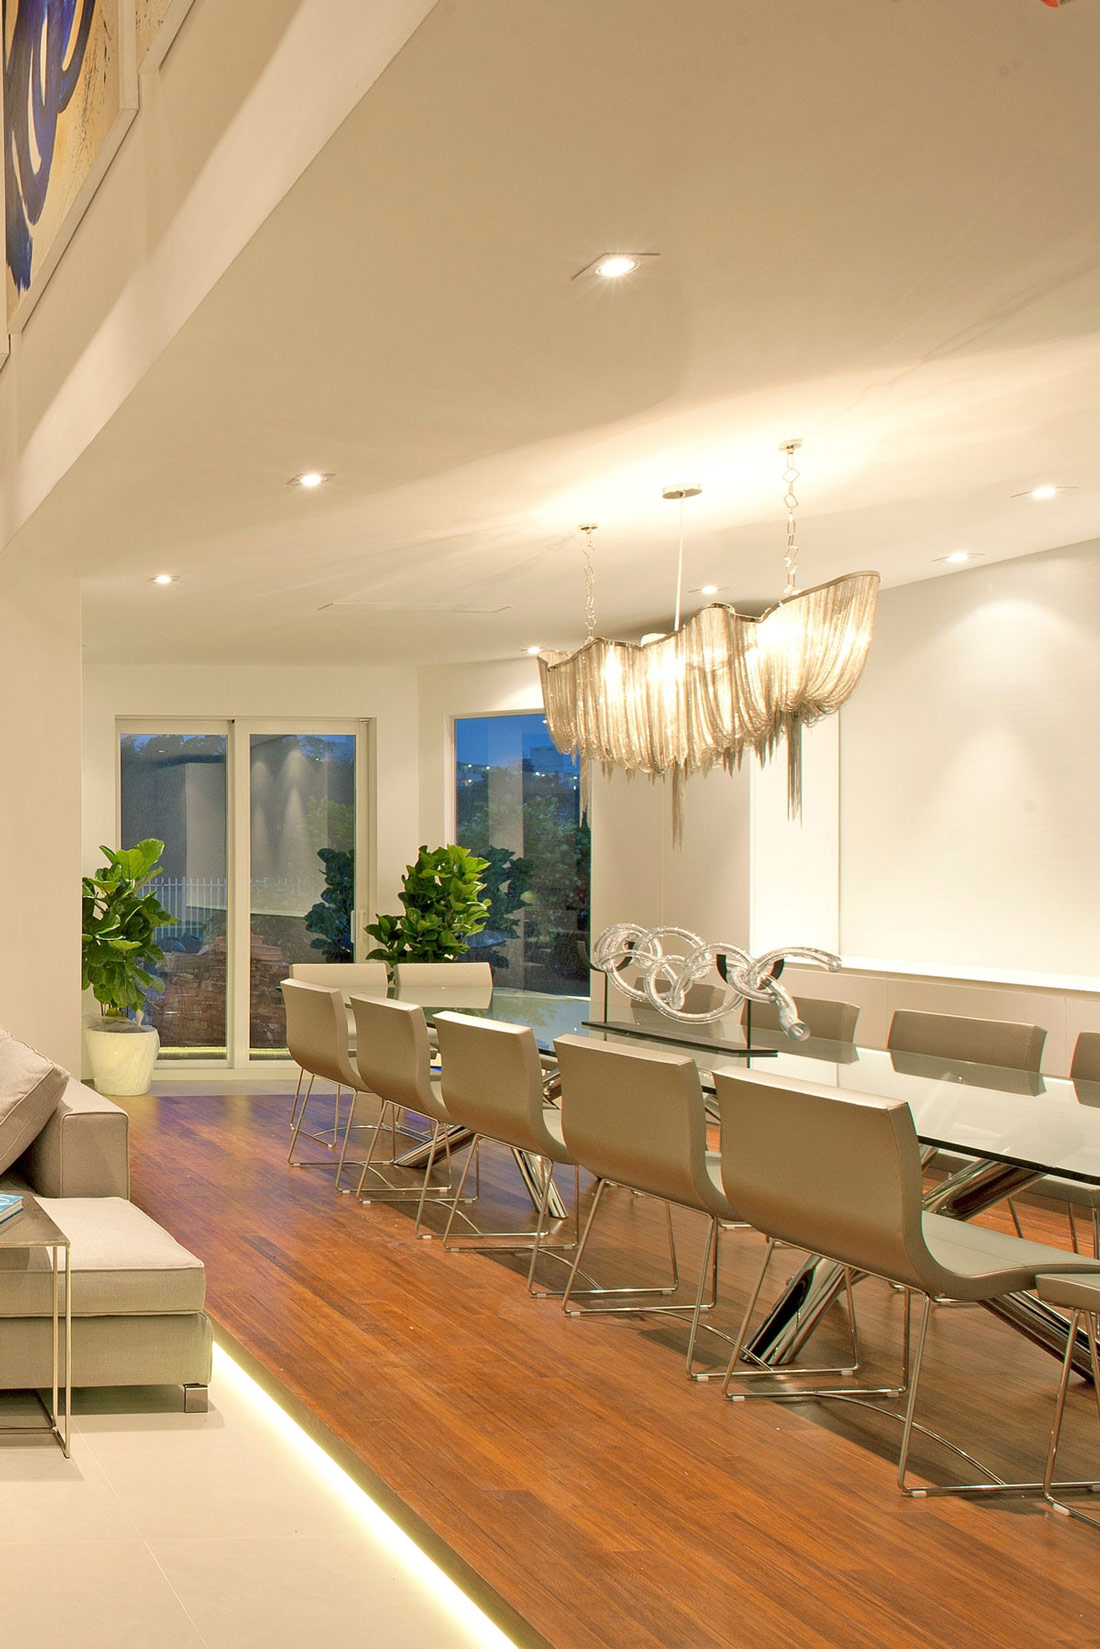 Glass Dining Table, Lighting, Stylish Interior Design in Miami, Florida